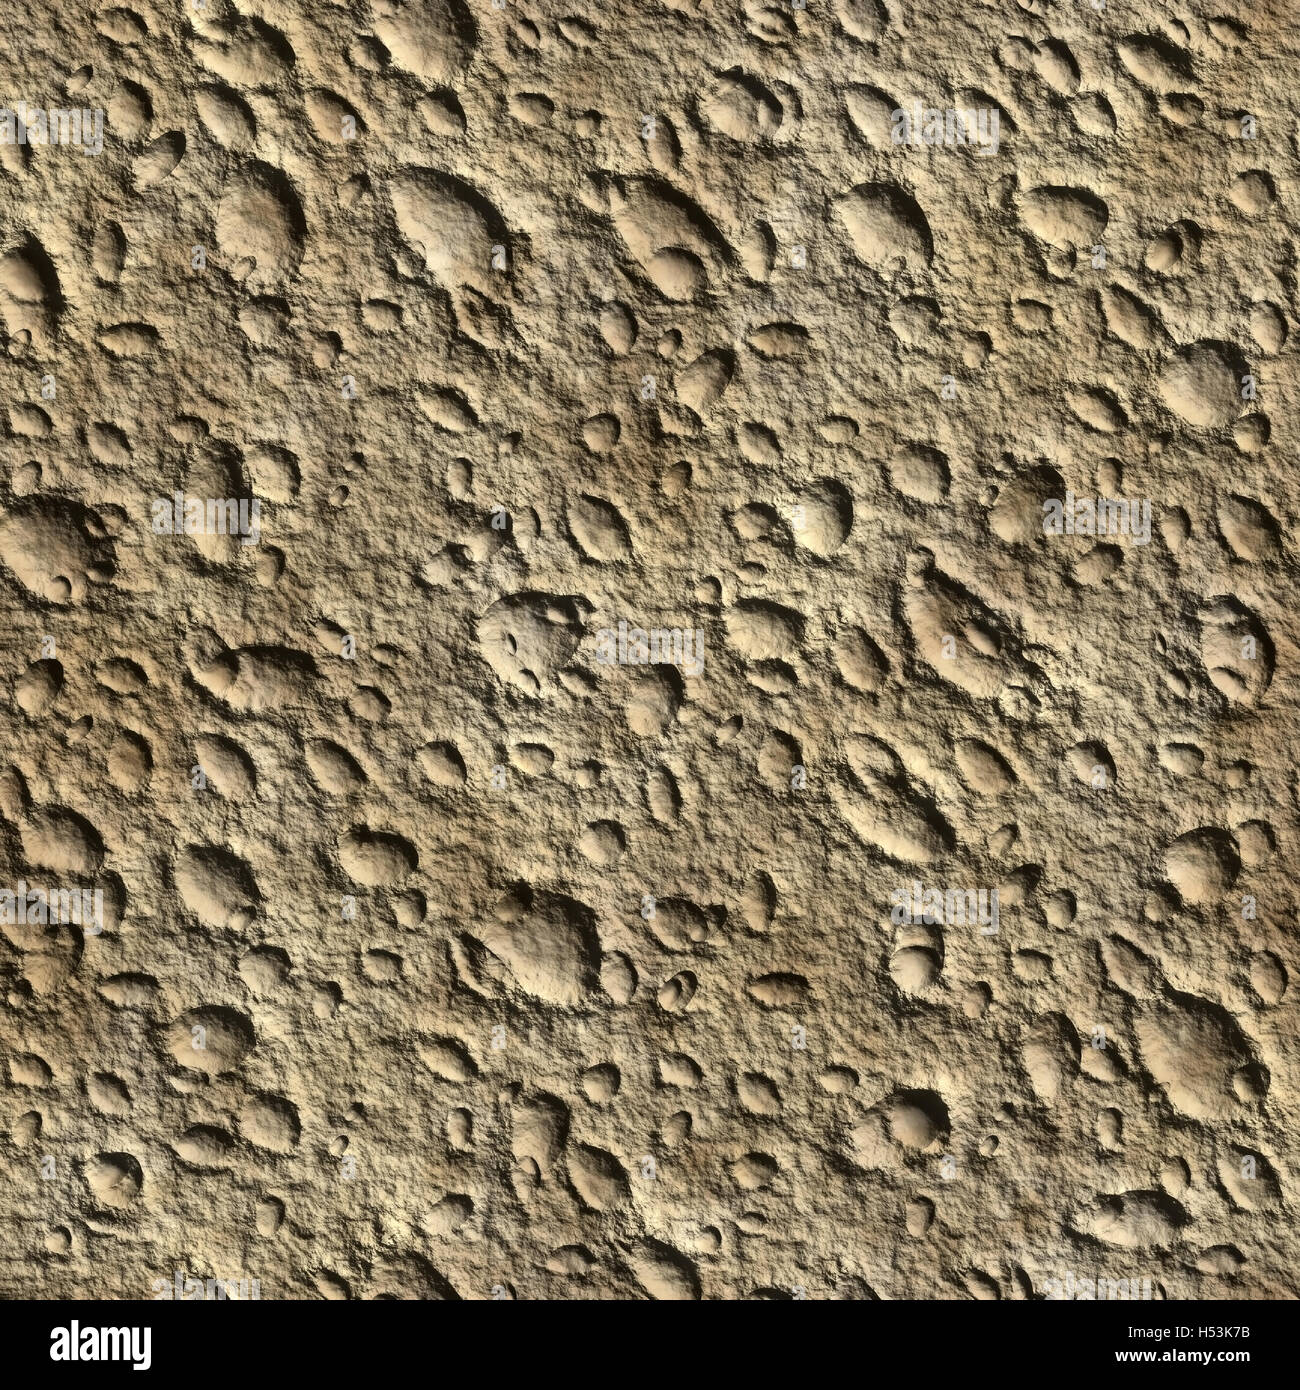 Background unearthly surface with craters. Picture seamless texture - Stock Image